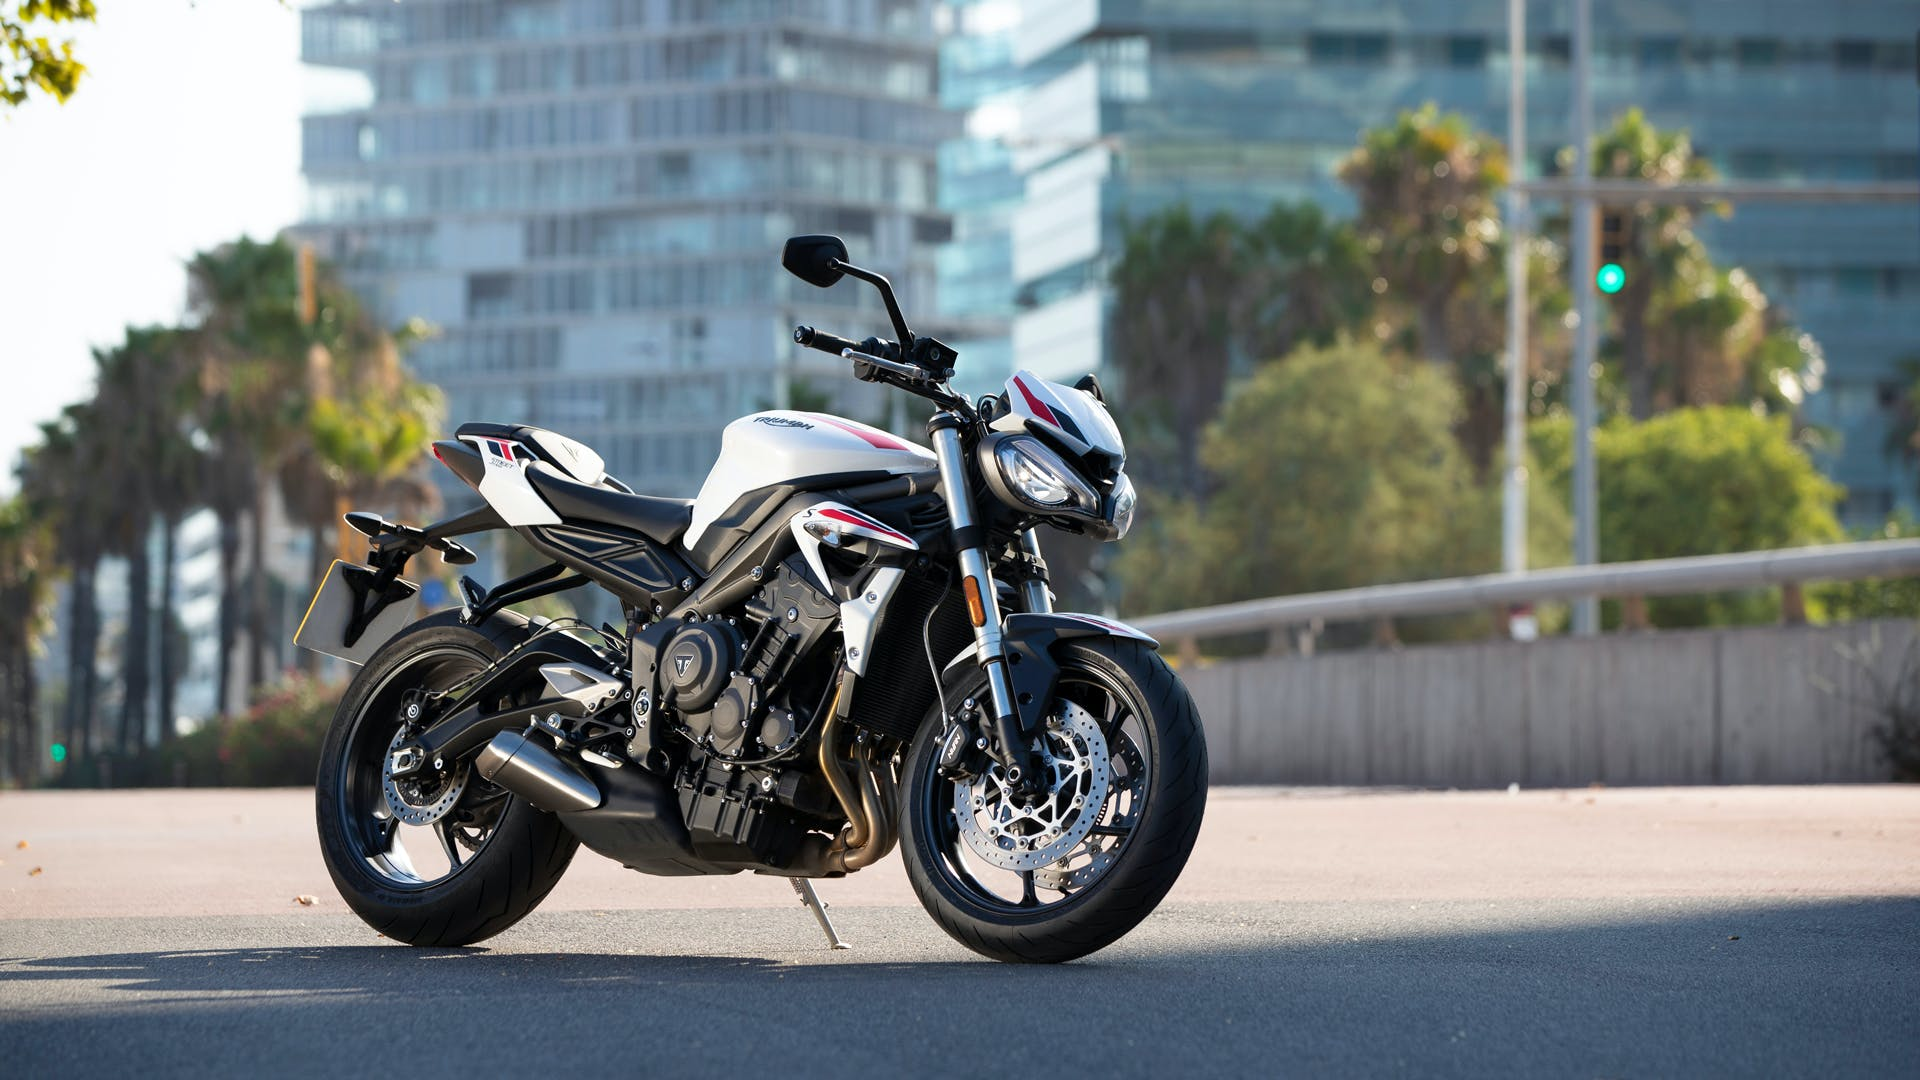 Triumph Street Triple S in crystal white colour, parked.